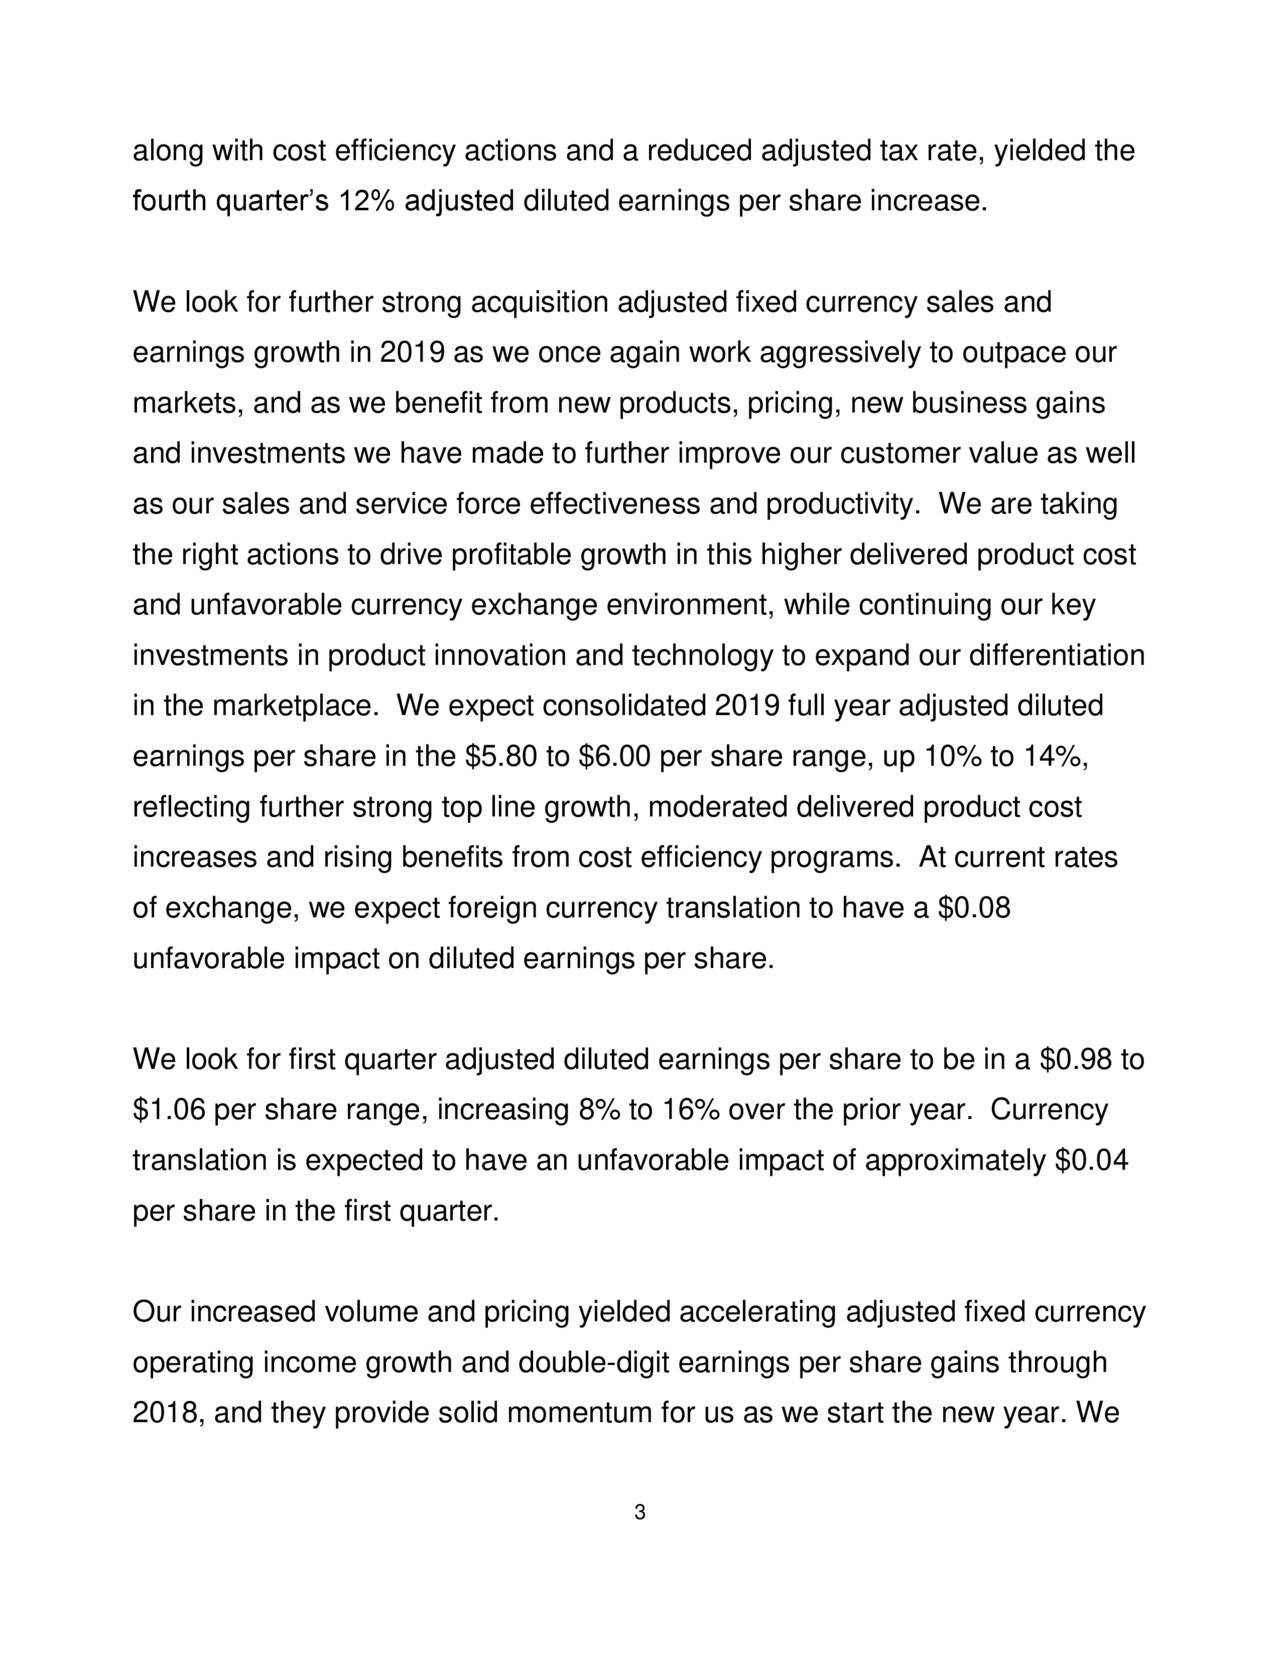 fourth quarter's 12% adjusted diluted earnings per share increase. We look for further strong acquisition adjusted fixed currency sales and earnings growth in 2019 as we once again work aggressively to outpace our markets, and as we benefit from new products, pricing, new business gains and investments we have made to further improve our customer value as well as our sales and service force effectiveness and productivity. We are taking the right actions to drive profitable growth in this higher delivered product cost and unfavorable currency exchange environment, while continuing our key investments in product innovation and technology to expand our differentiation in the marketplace. We expect consolidated 2019 full year adjusted diluted earnings per share in the $5.80 to $6.00 per share range, up 10% to 14%, reflecting further strong top line growth, moderated delivered product cost increases and rising benefits from cost efficiency programs. At current rates of exchange, we expect foreign currency translation to have a $0.08 unfavorable impact on diluted earnings per share. We look for first quarter adjusted diluted earnings per share to be in a $0.98 to $1.06 per share range, increasing 8% to 16% over the prior year. Currency translation is expected to have an unfavorable impact of approximately $0.04 per share in the first quarter. Our increased volume and pricing yielded accelerating adjusted fixed currency operating income growth and double-digit earnings per share gains through 2018, and they provide solid momentum for us as we start the new year. We 3